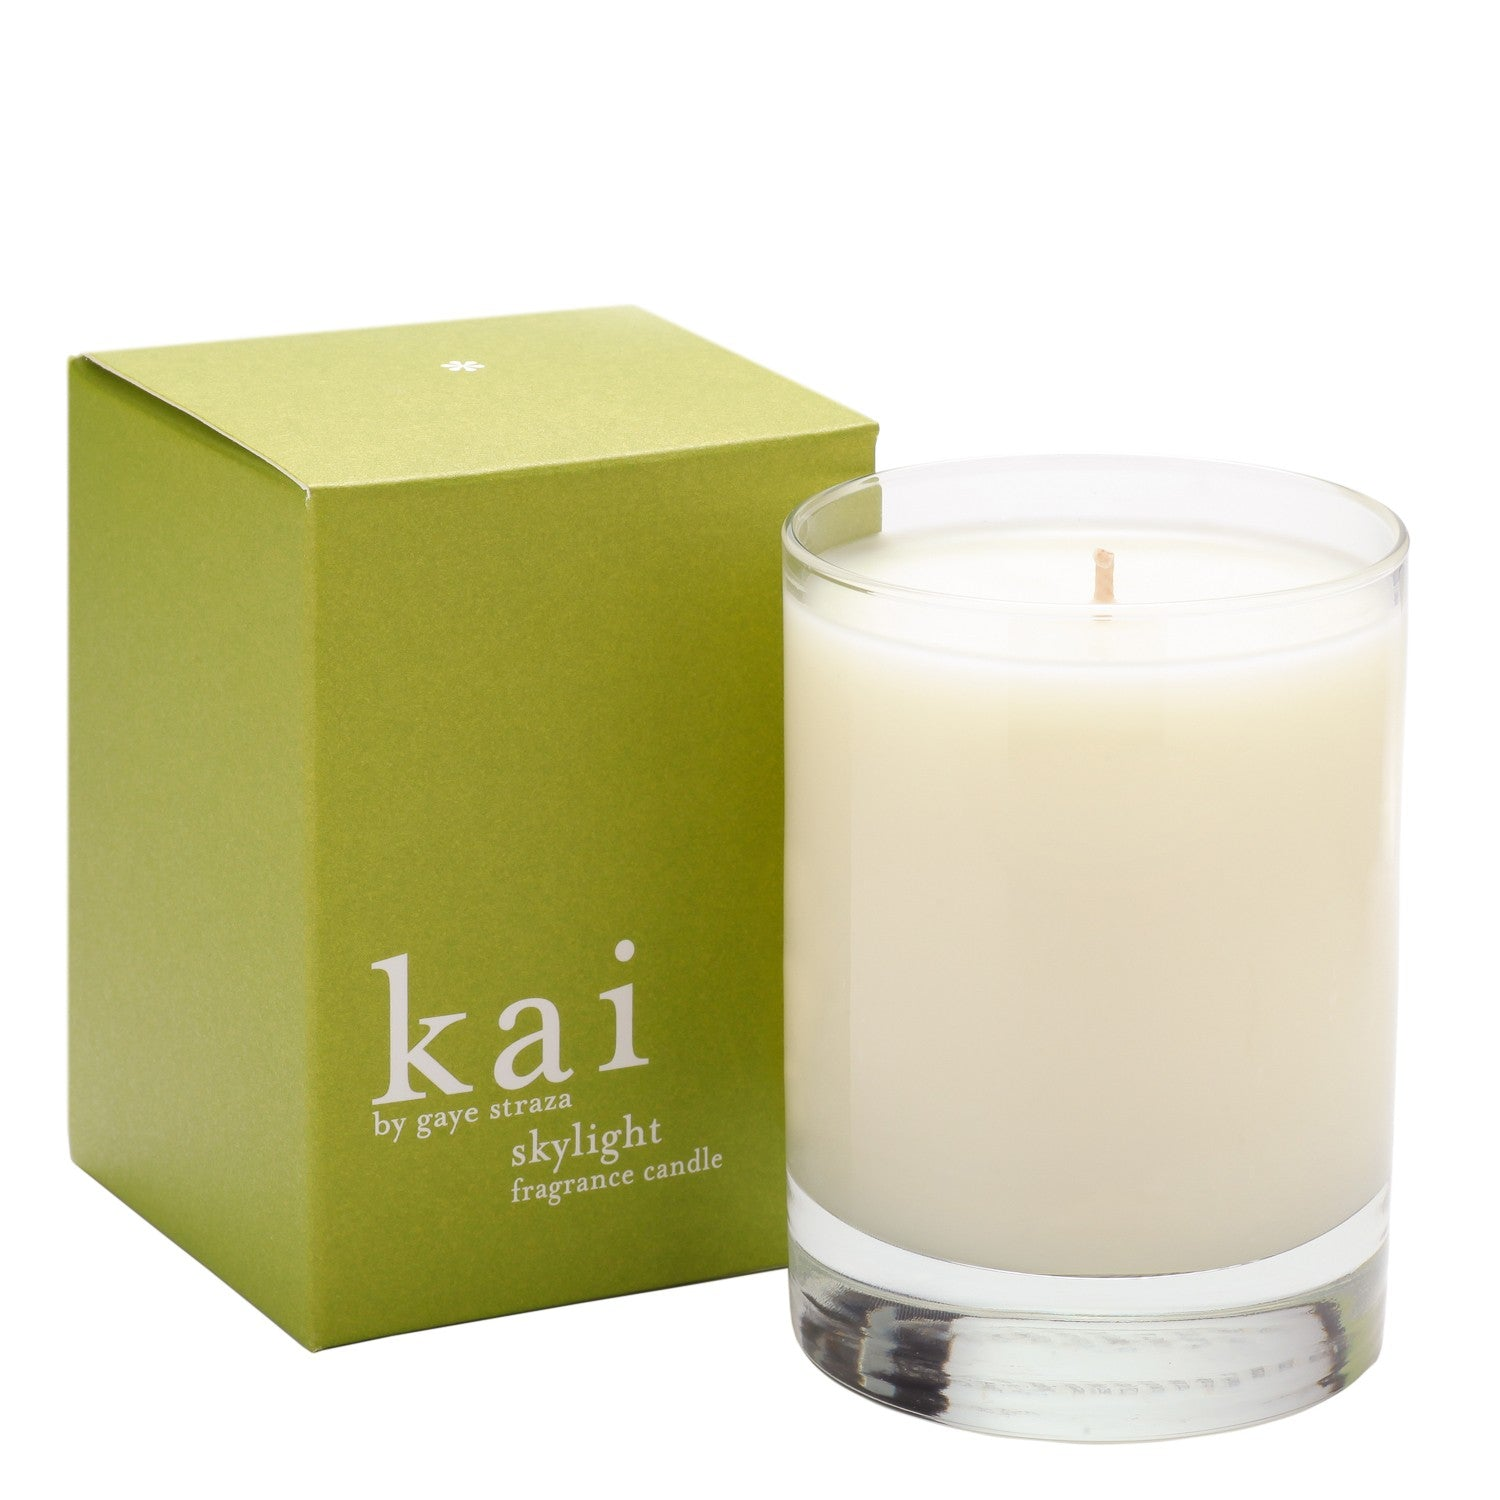 Kai - Skylight Candle